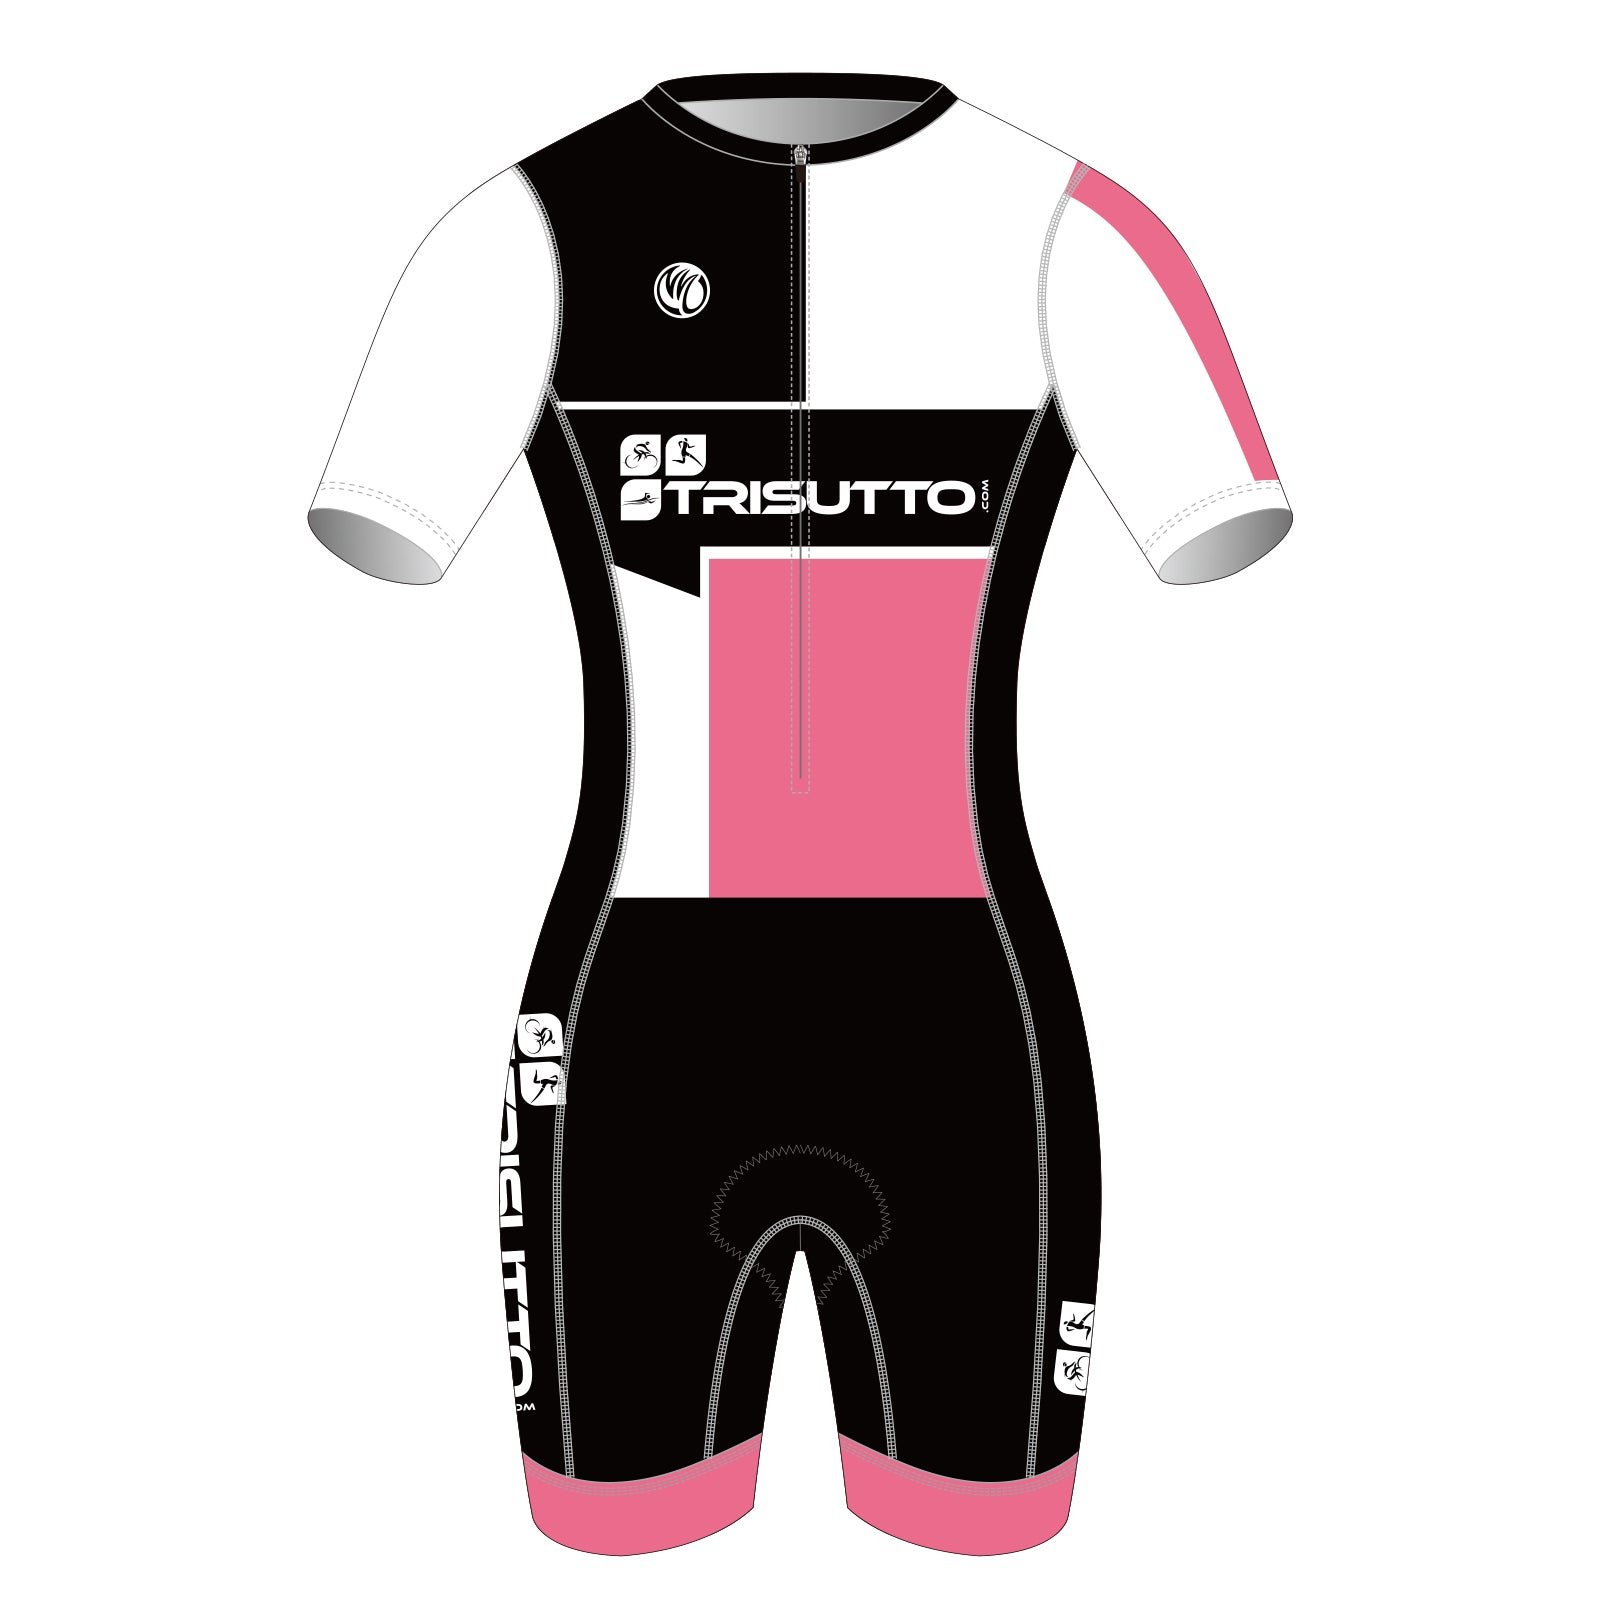 TRISUTTO Short Sleeve Tri Suit